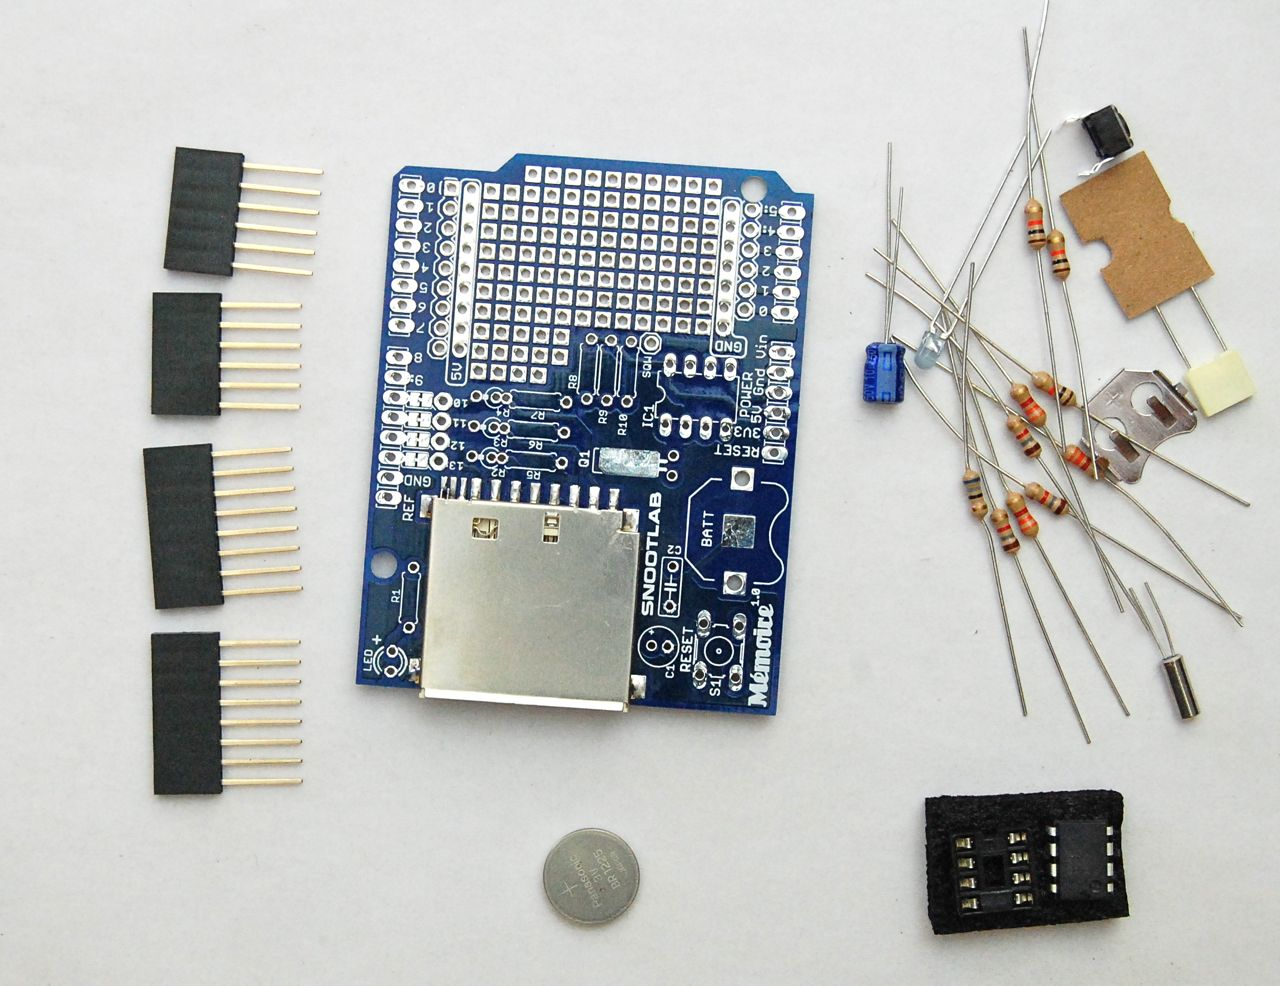 Dr Monks Diy Electronics Blog A Review Of Snootlabs Memoire Arduino Real Time Clock Shield Schematic Which Gives You Can Solder In Your Own Temperature Sensors Or Whatever Else Want To Log Along With The